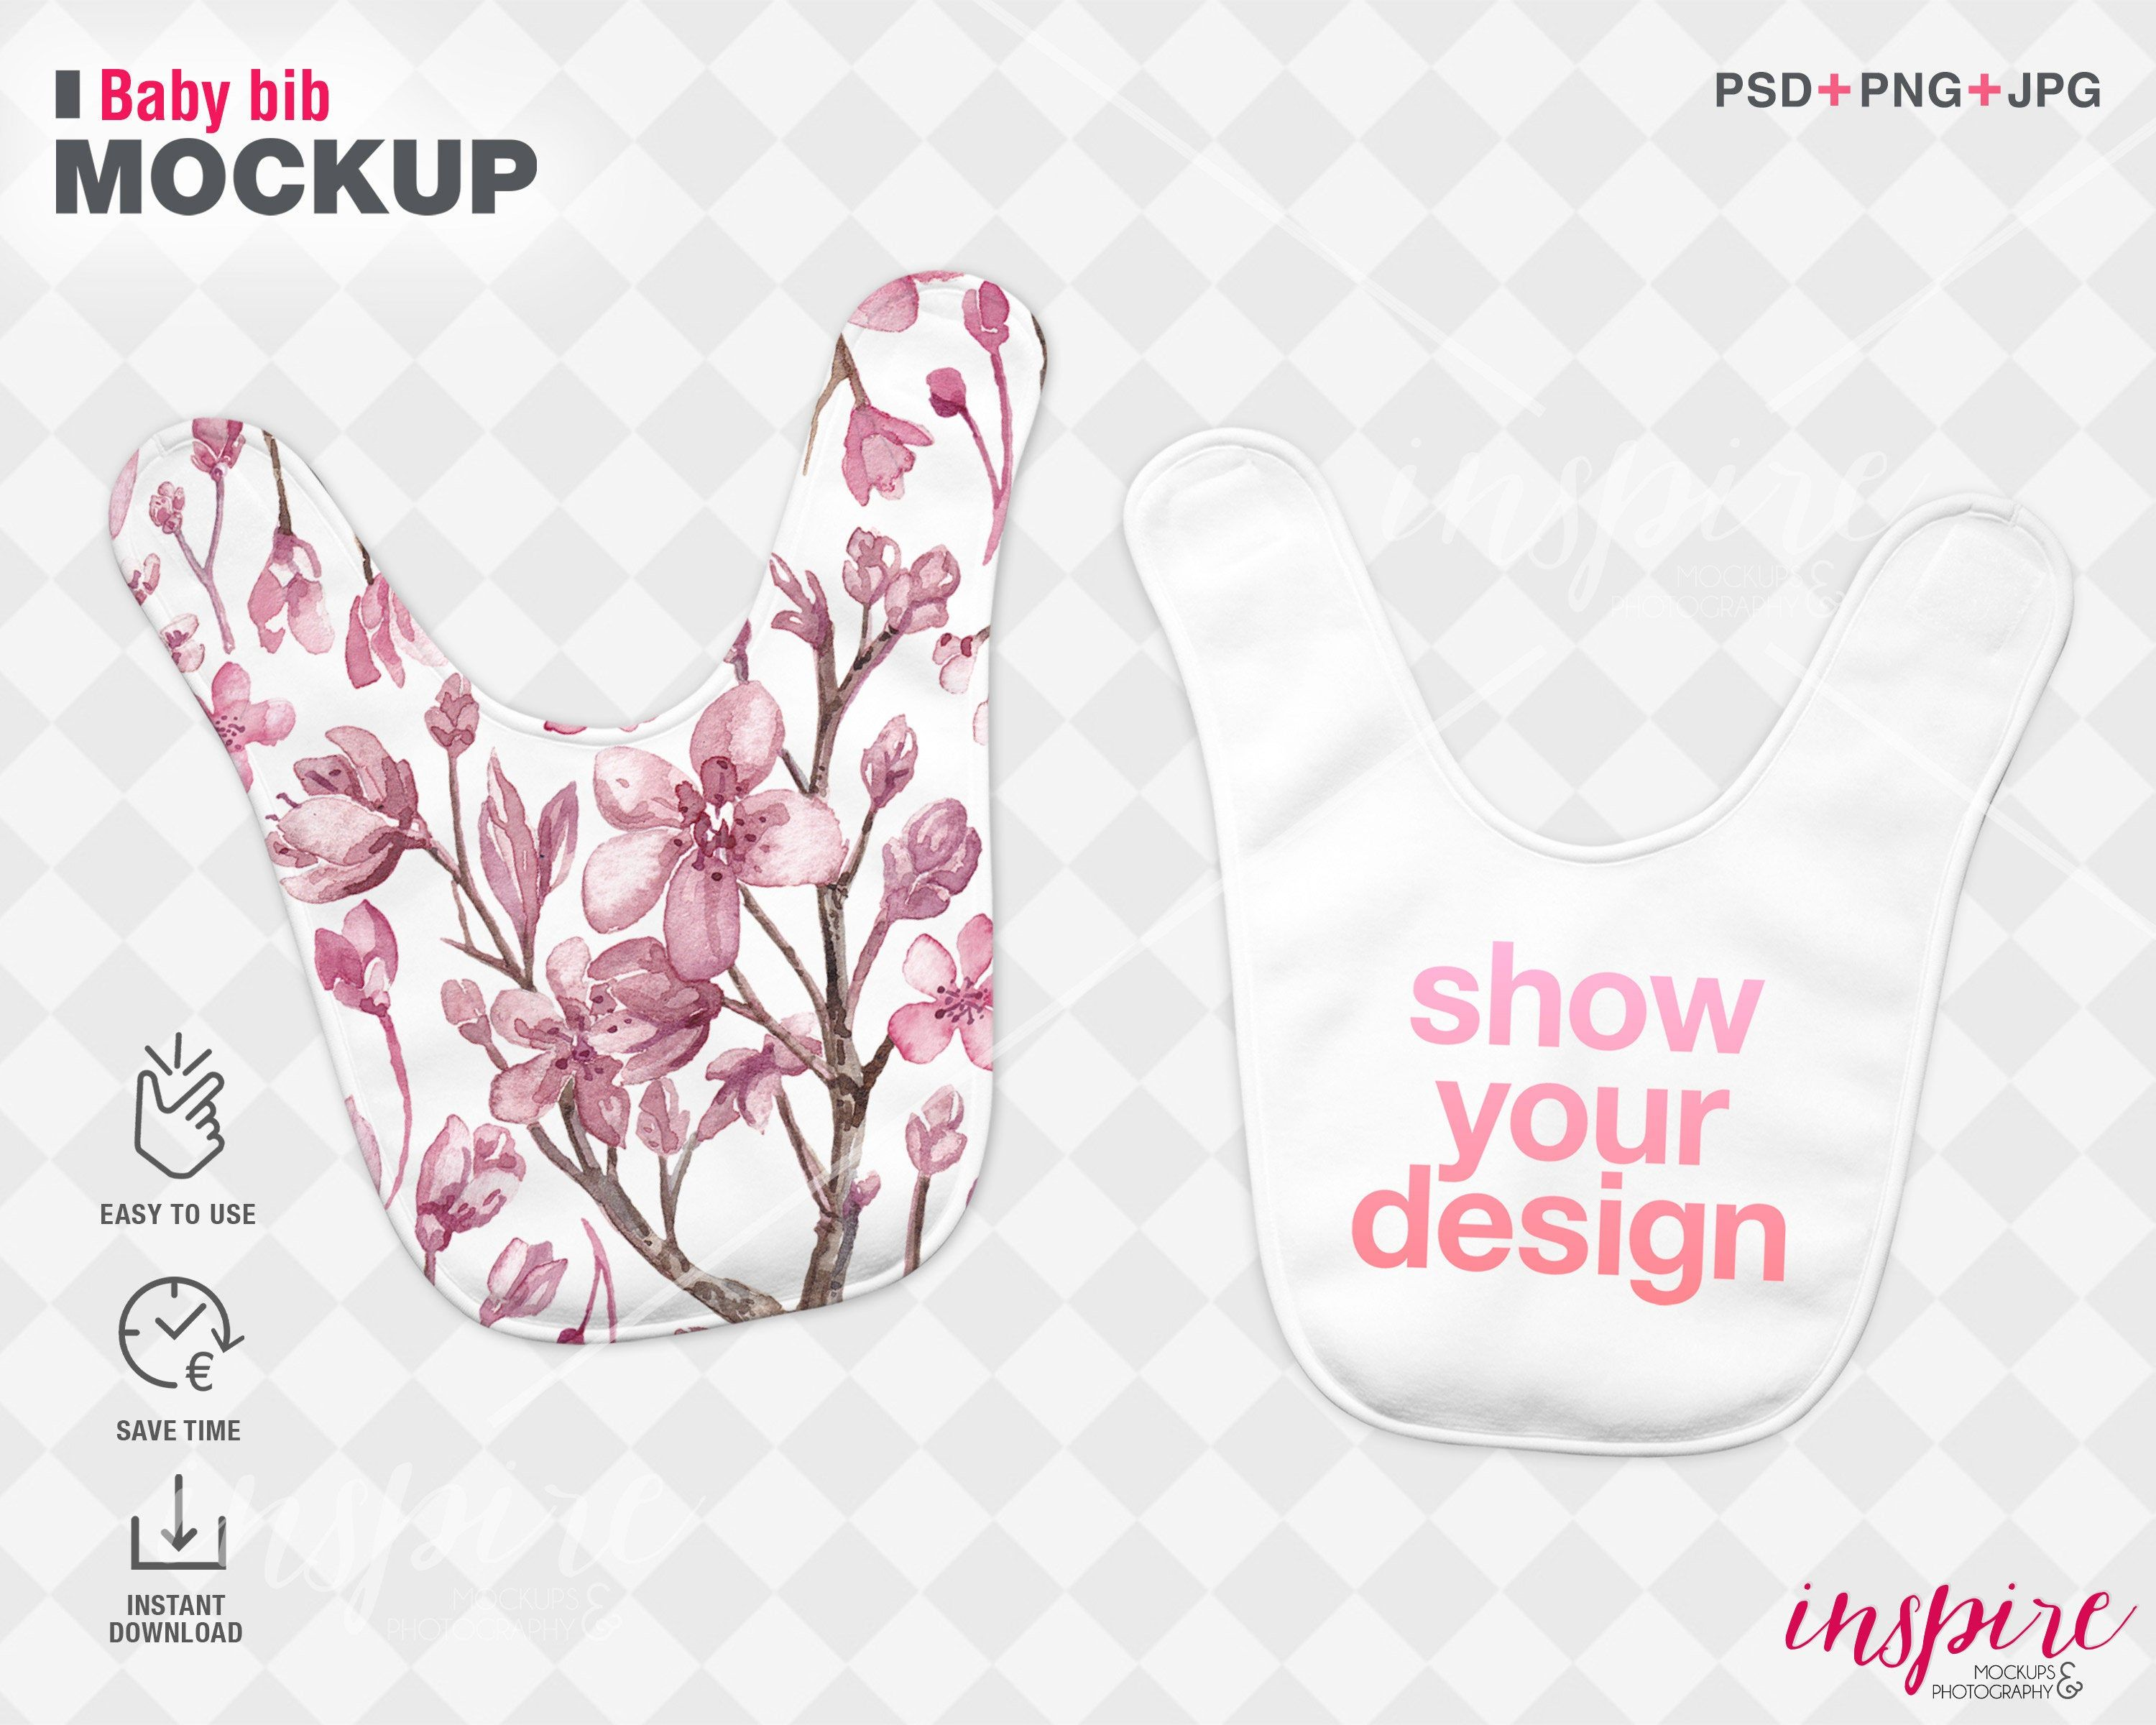 Double Baby Bib Psd Mockup Psd Smart Object Layers Add Etsy In 2021 Baby Bibs Mockup Banner Images